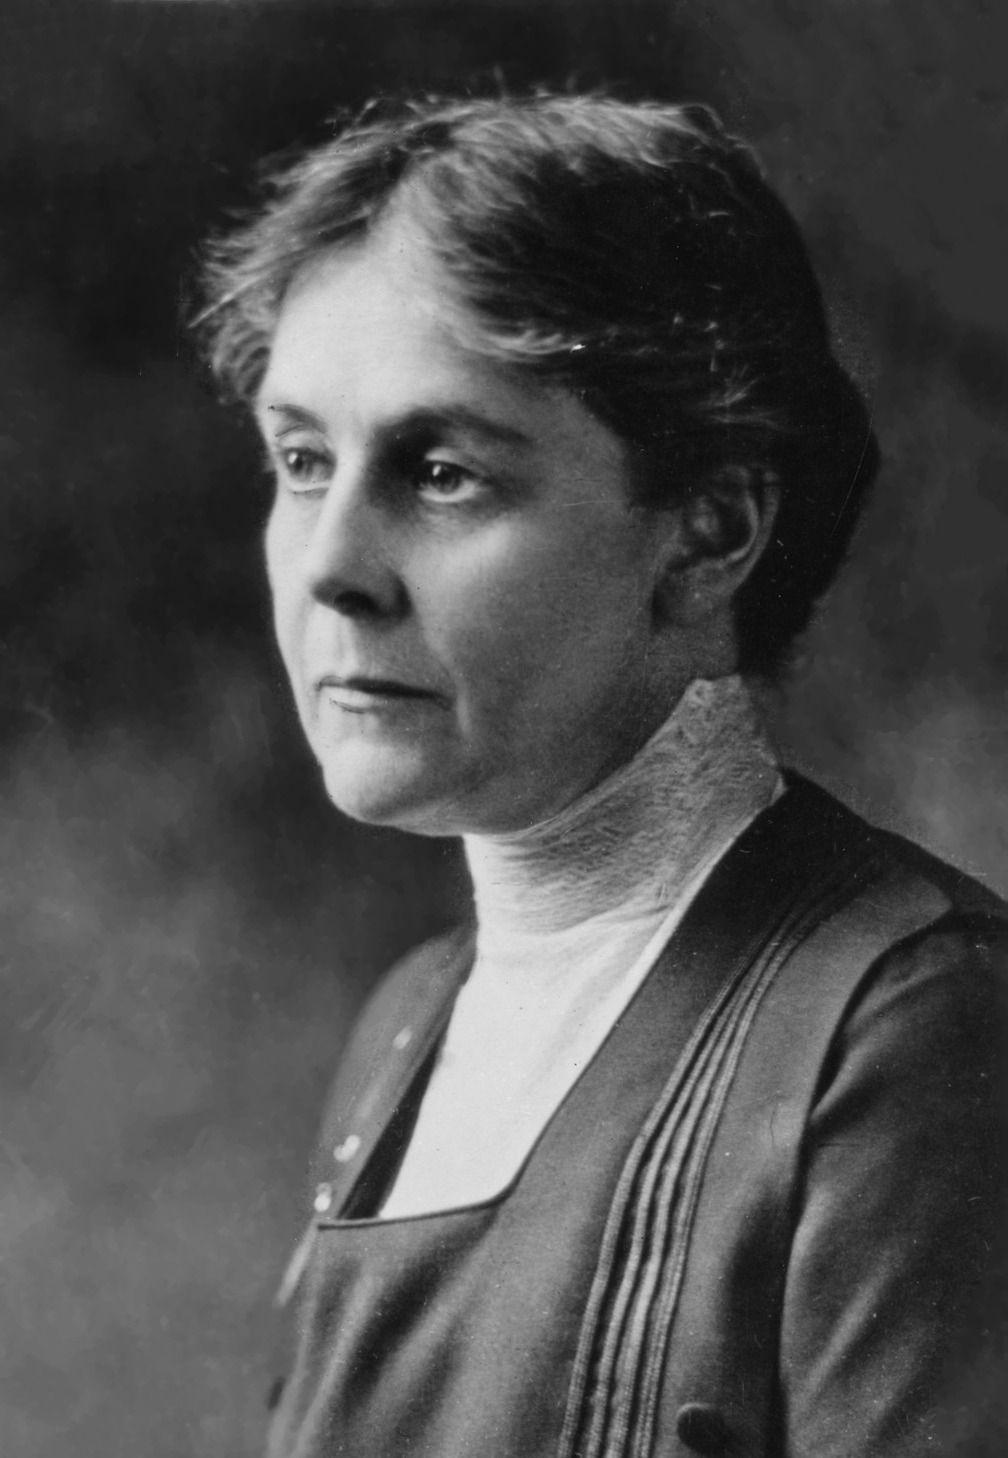 dr alice hamilton harvards first woman professor